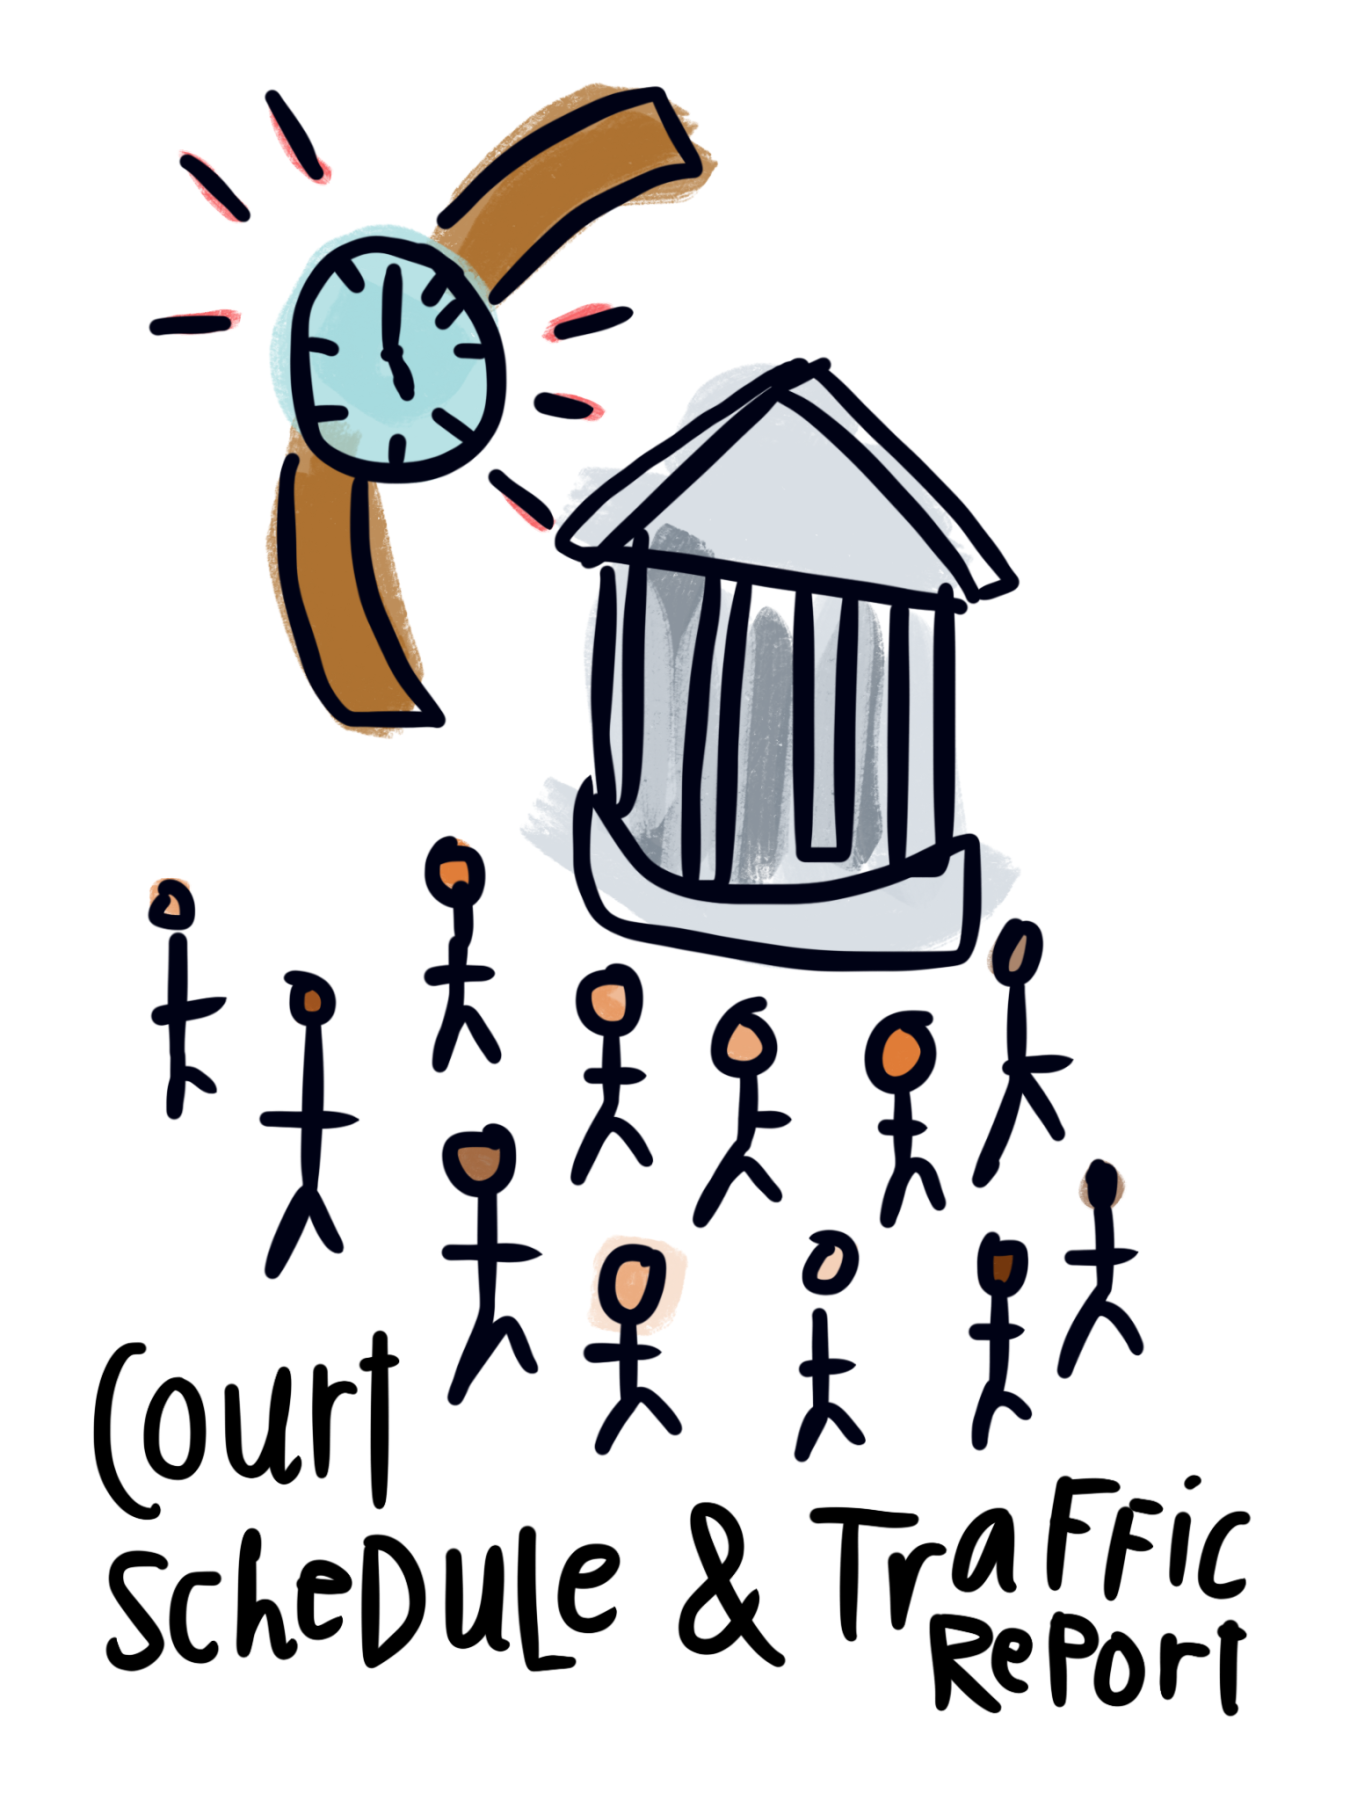 Legal_Design_Concepts - court traffic